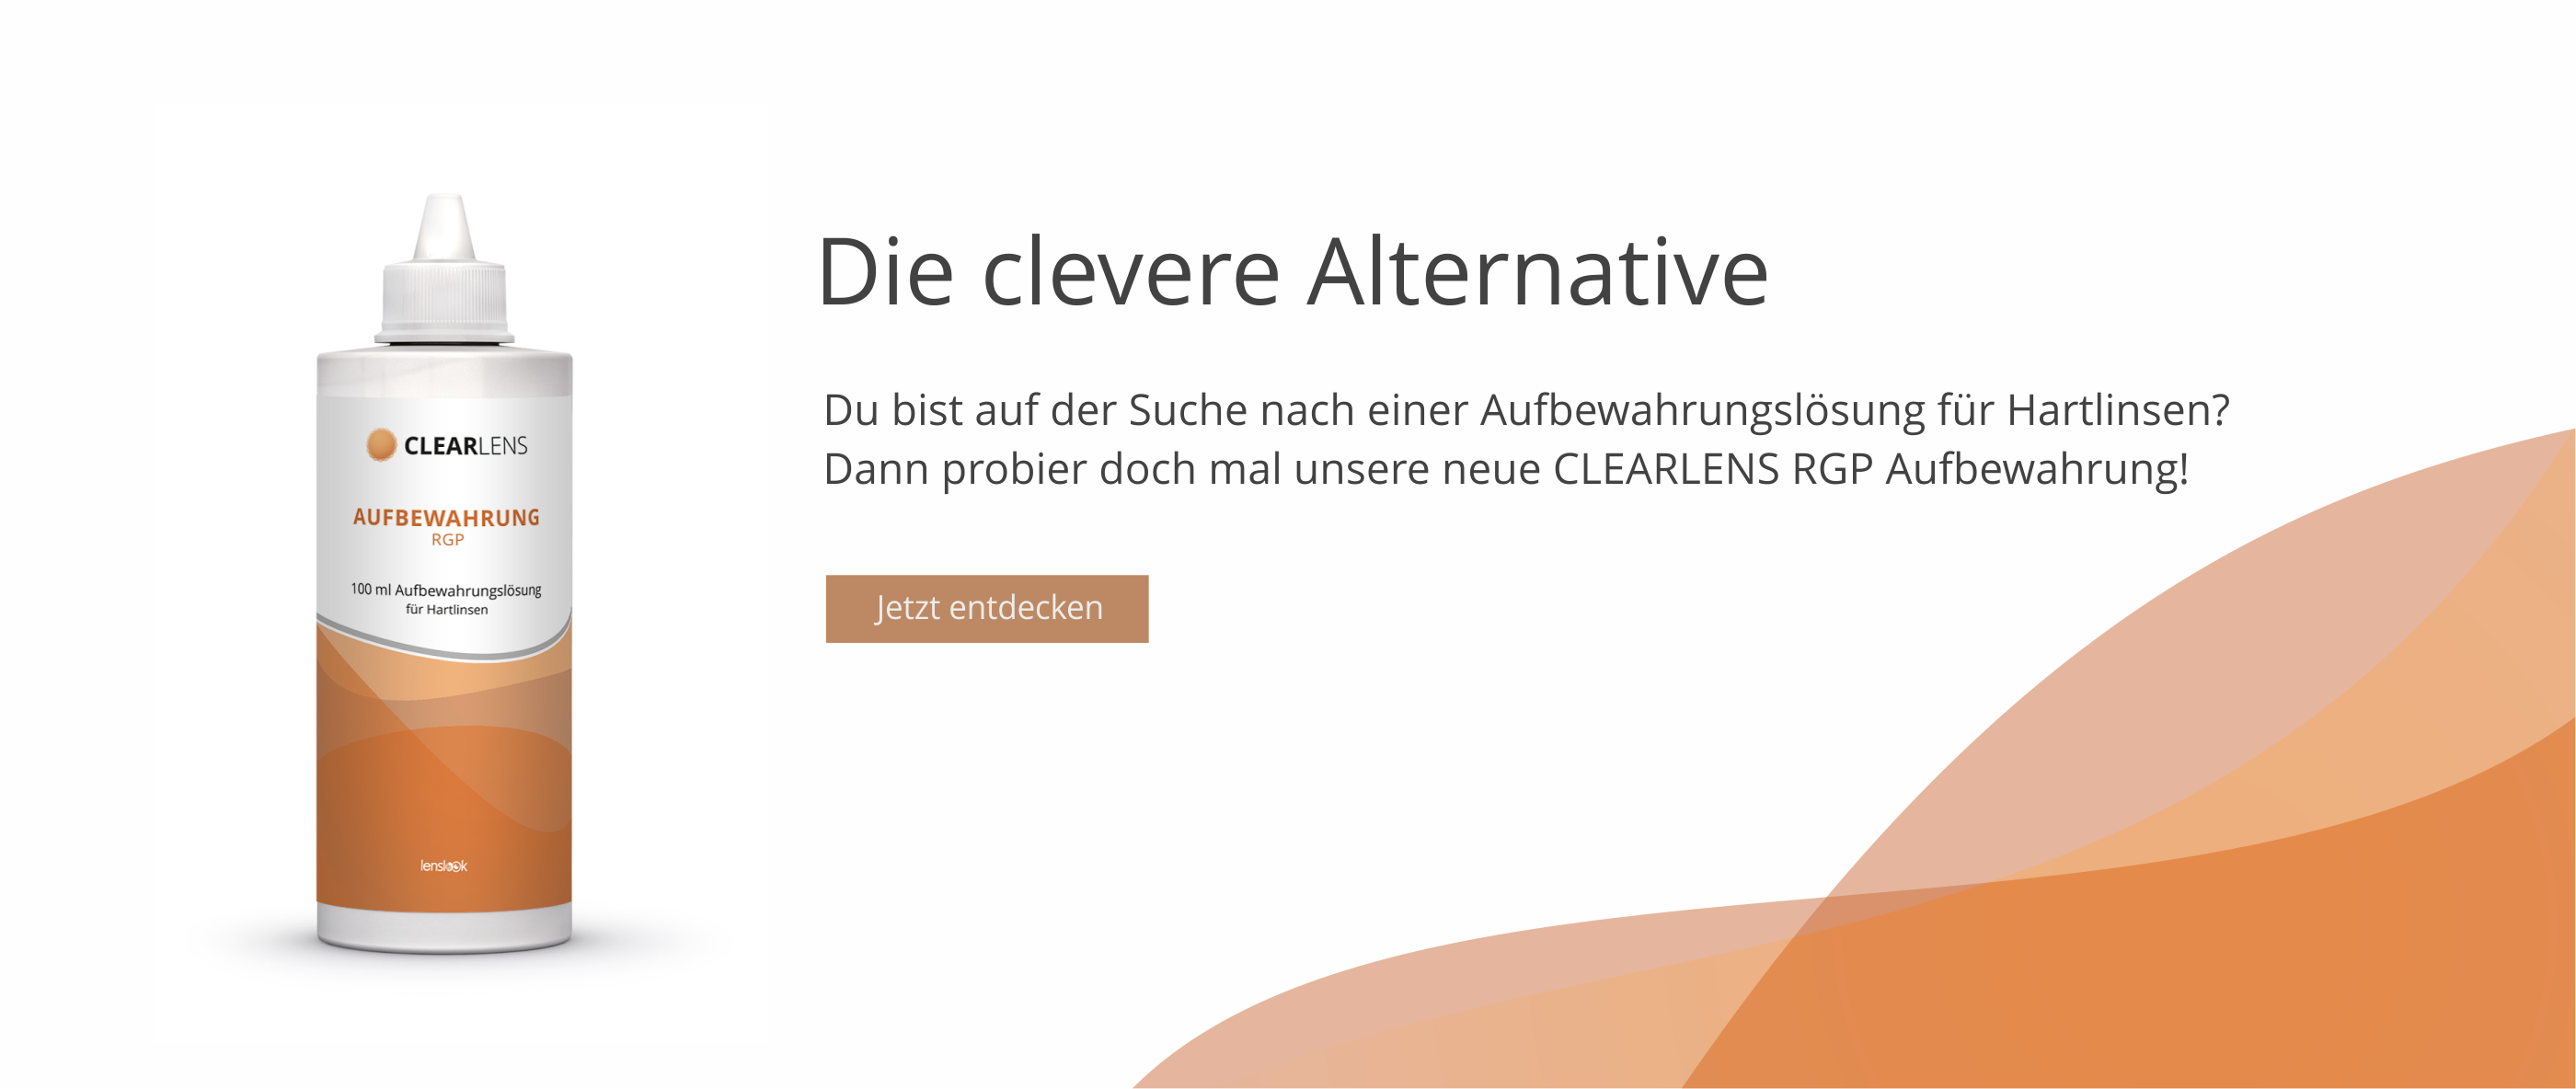 ClearLens_Alternative_RGP_Aufbewahrung_100ml